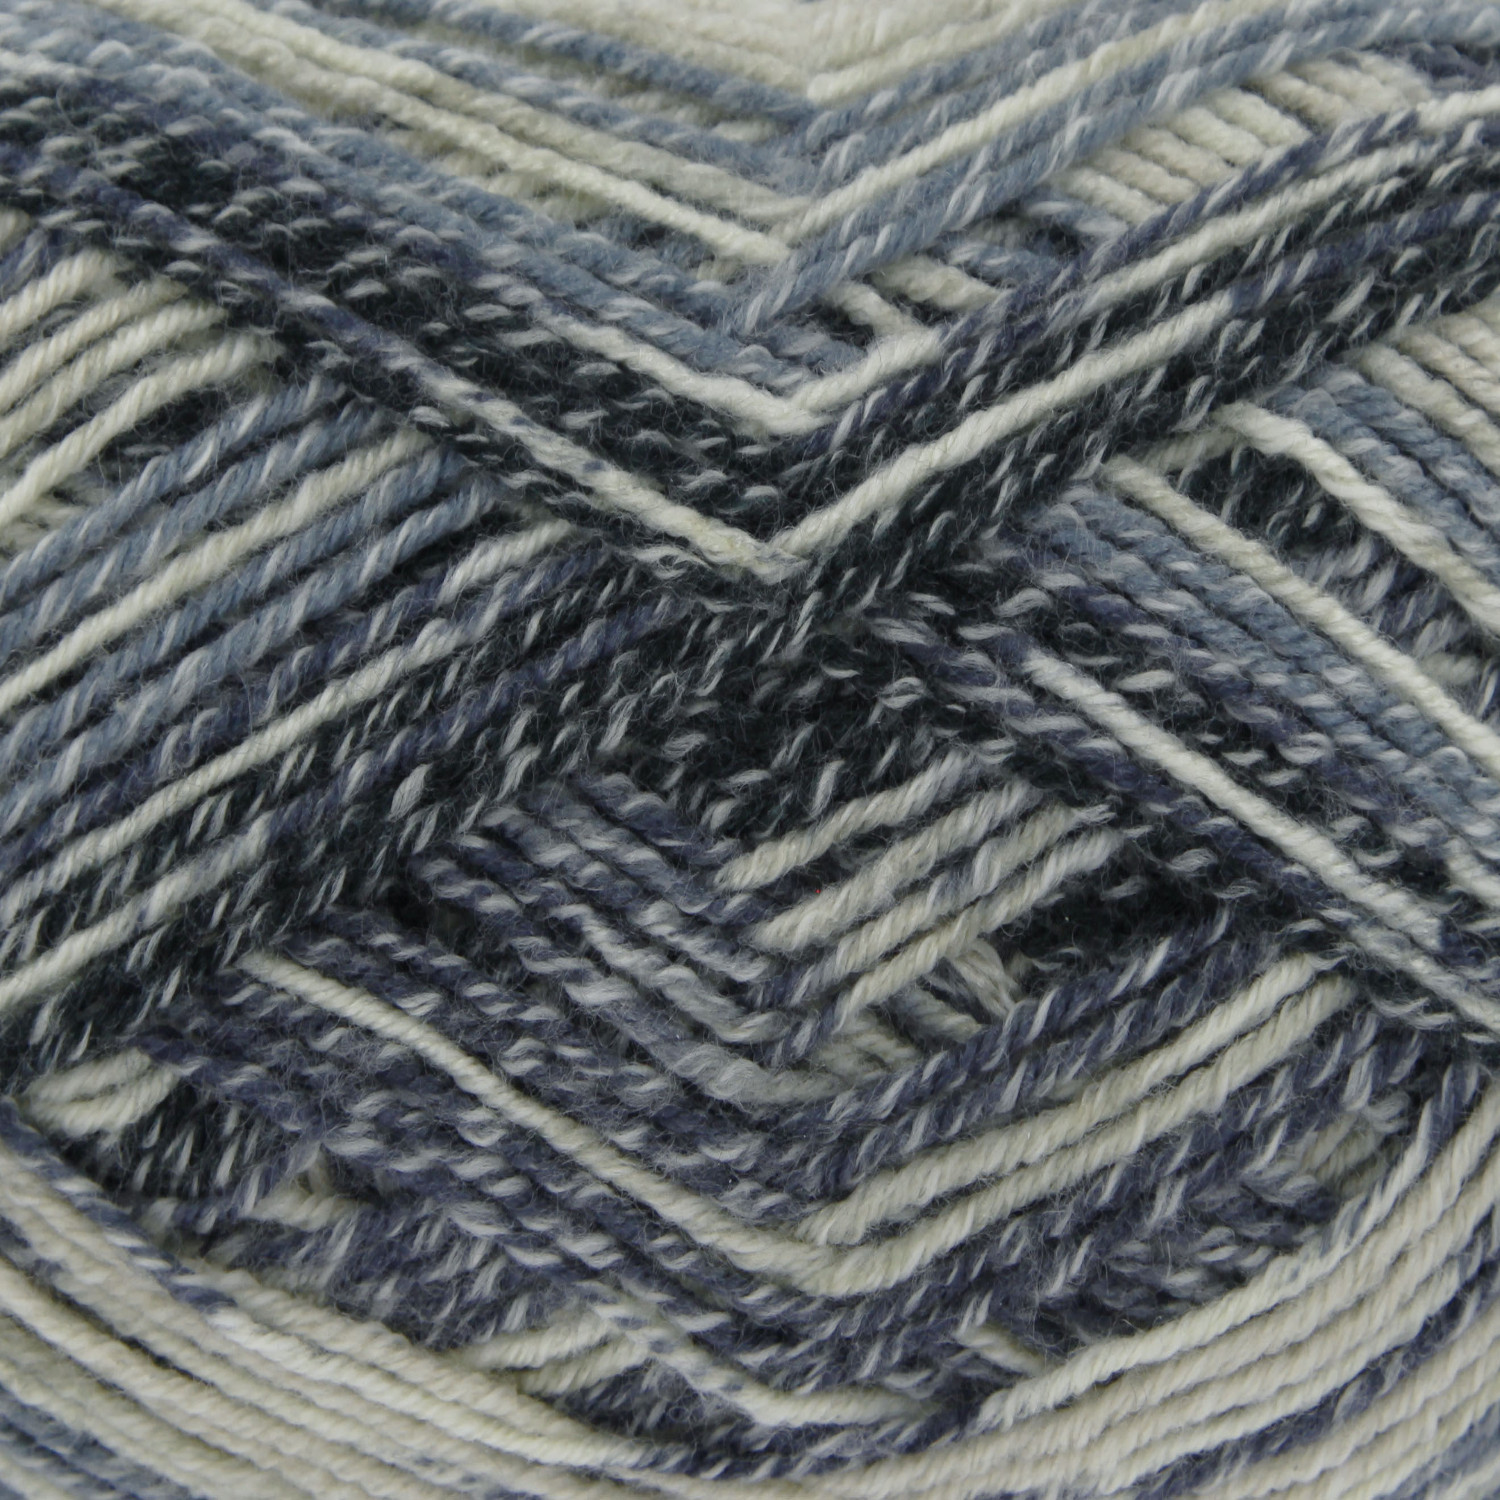 Double Knitting Wool : ... -Drifter-Double-Knit-Yarn-Super-Soft-Acrylic-Blend-DK-Wool-100g-Ball